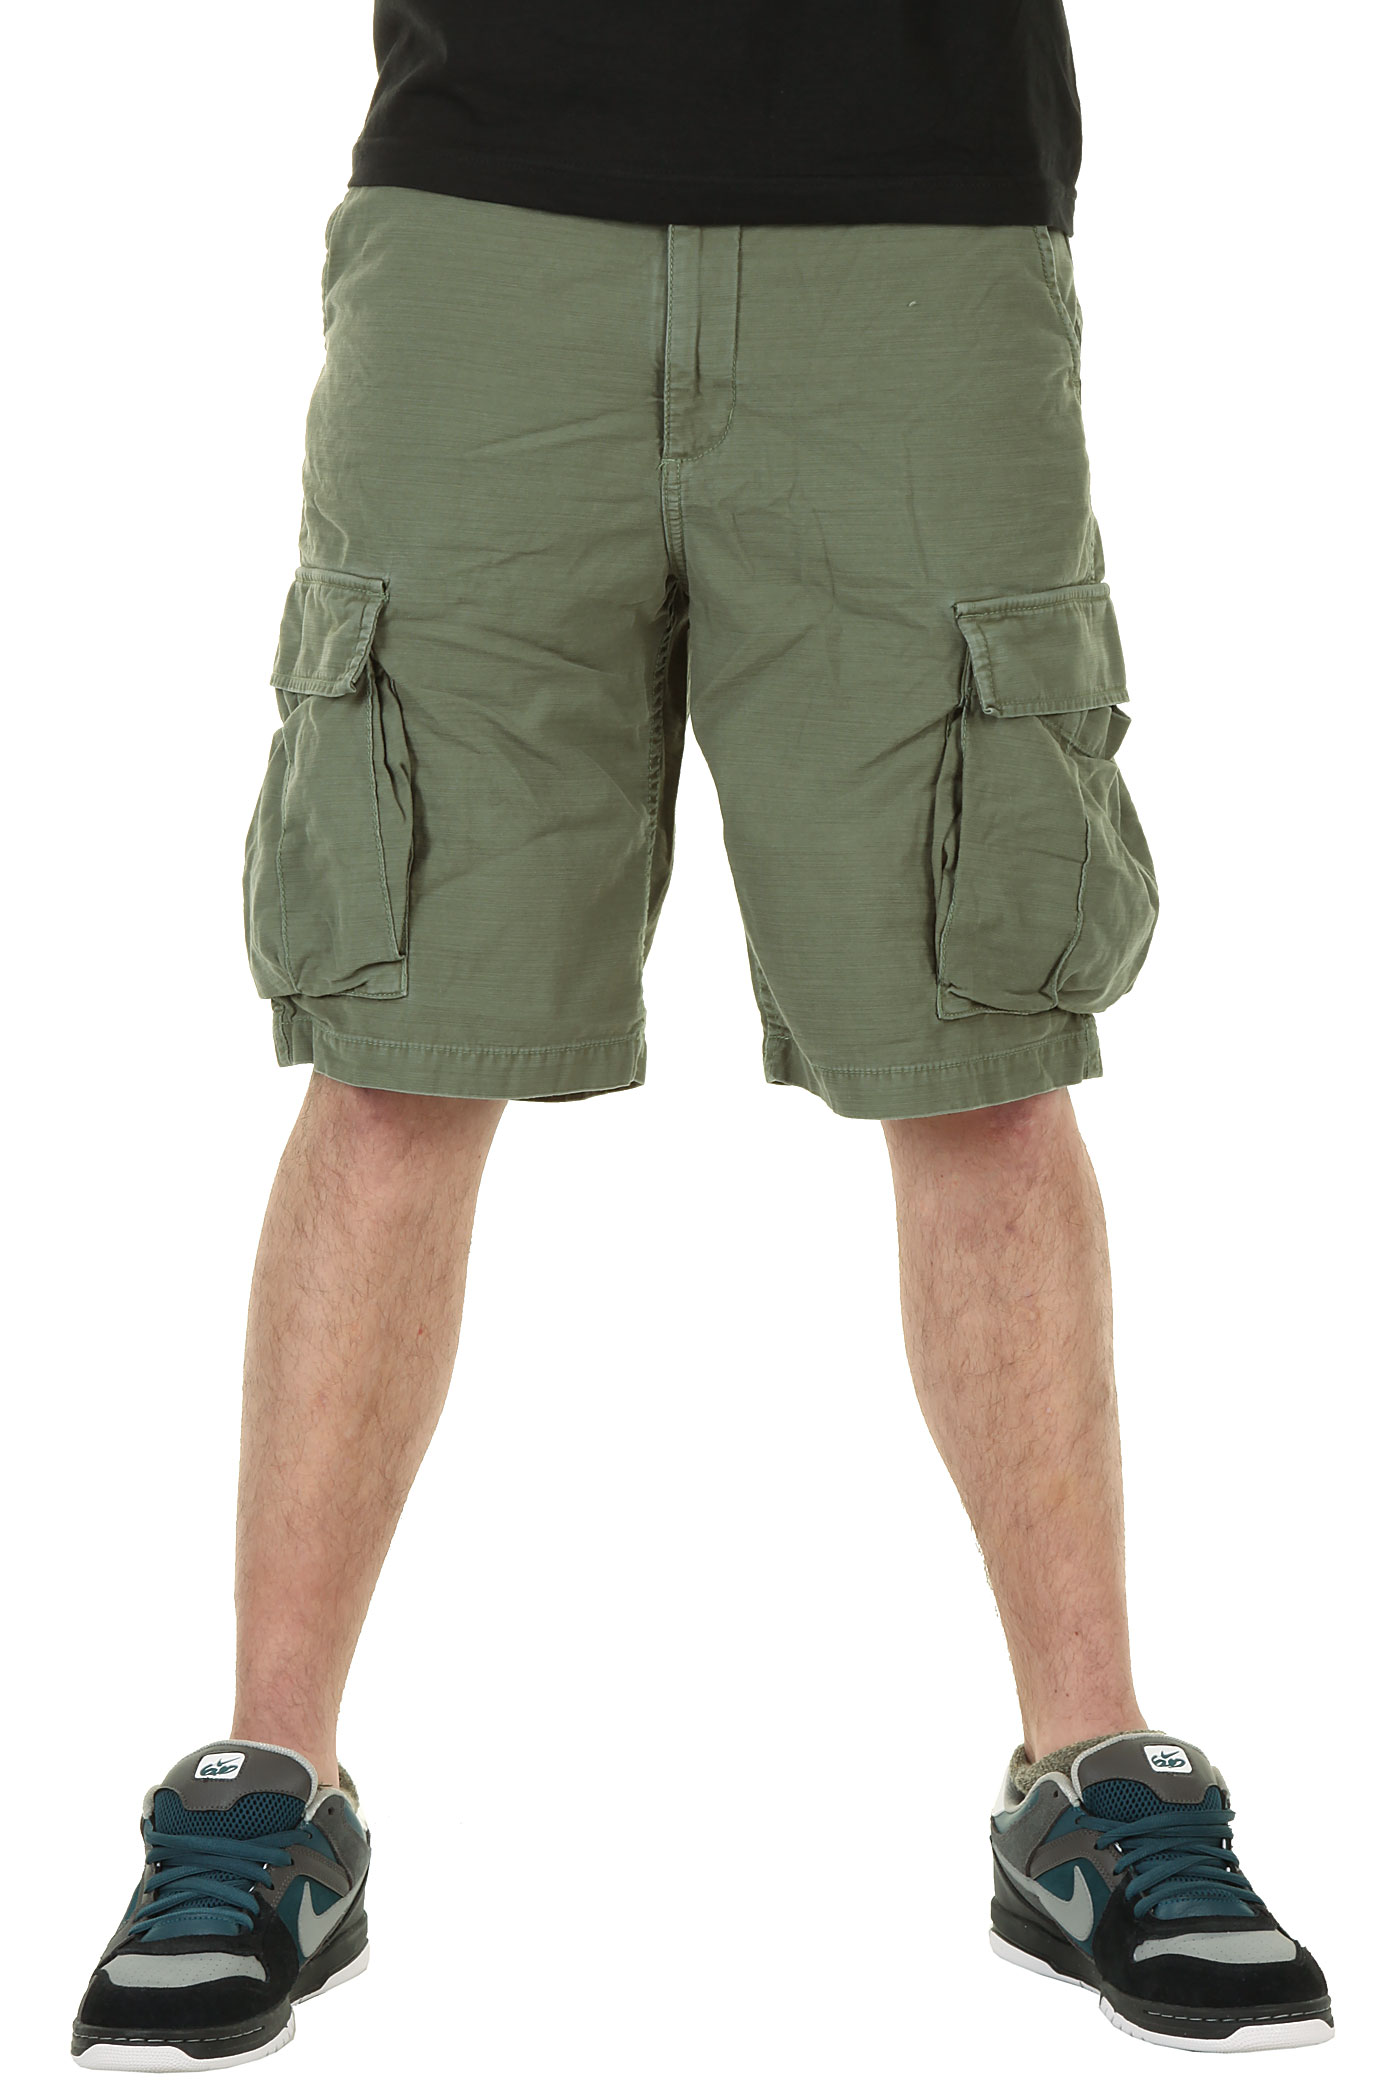 58ef4efd2b Cargo shorts with vans - photo 2